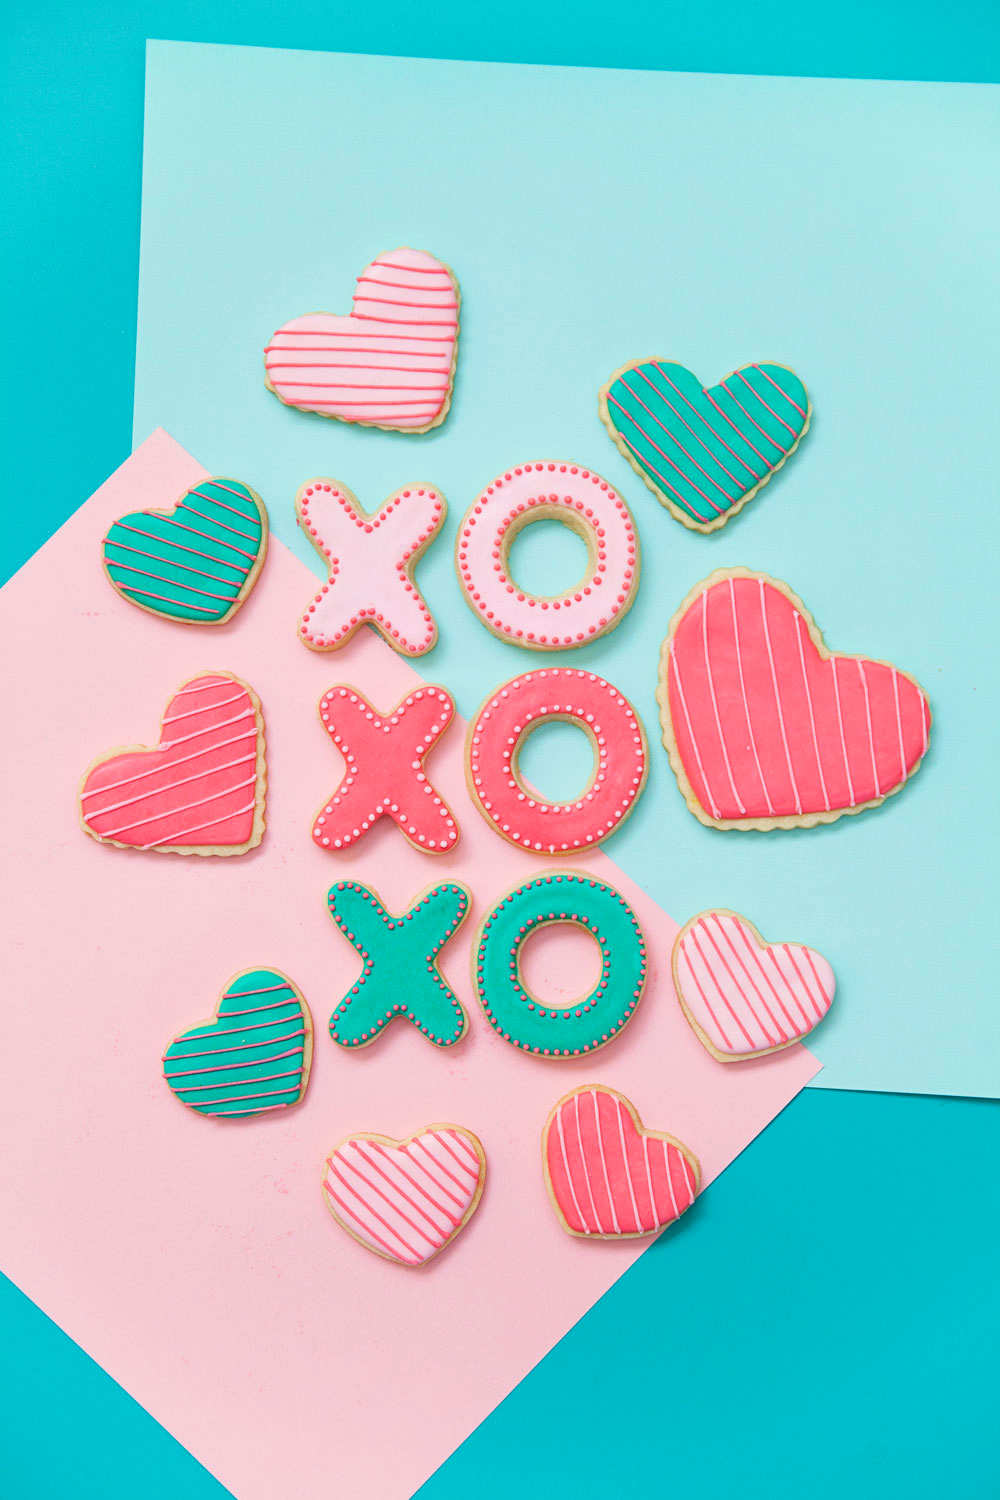 These Valentine's Day Sugar cookies are the cutest!! Give people hugs and kisses with cookies this holiday.